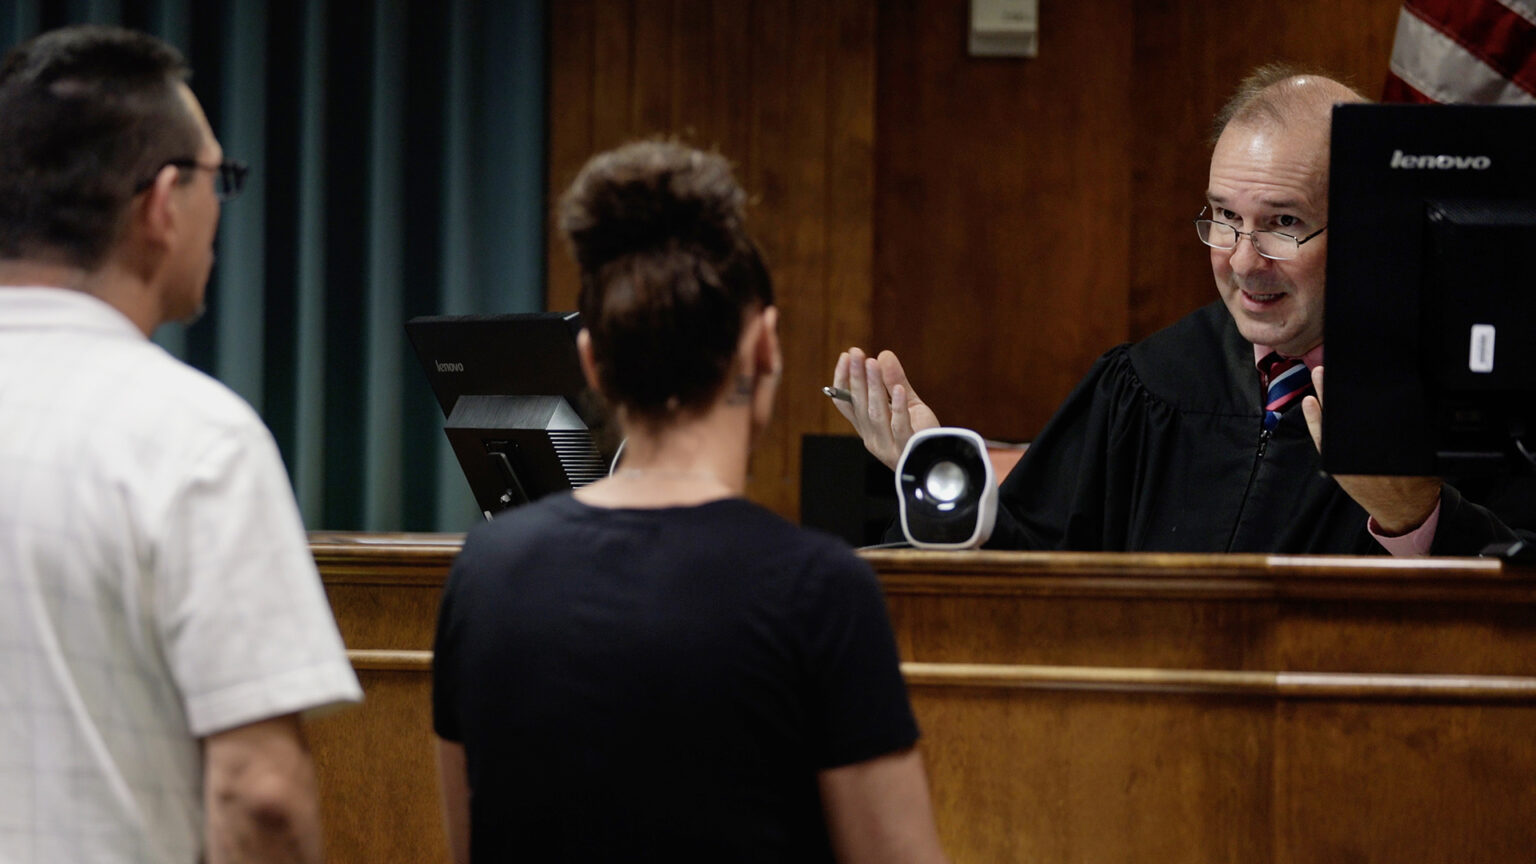 Paul Burke sits at a raised judge's bench and speaks in an eviction proceeding